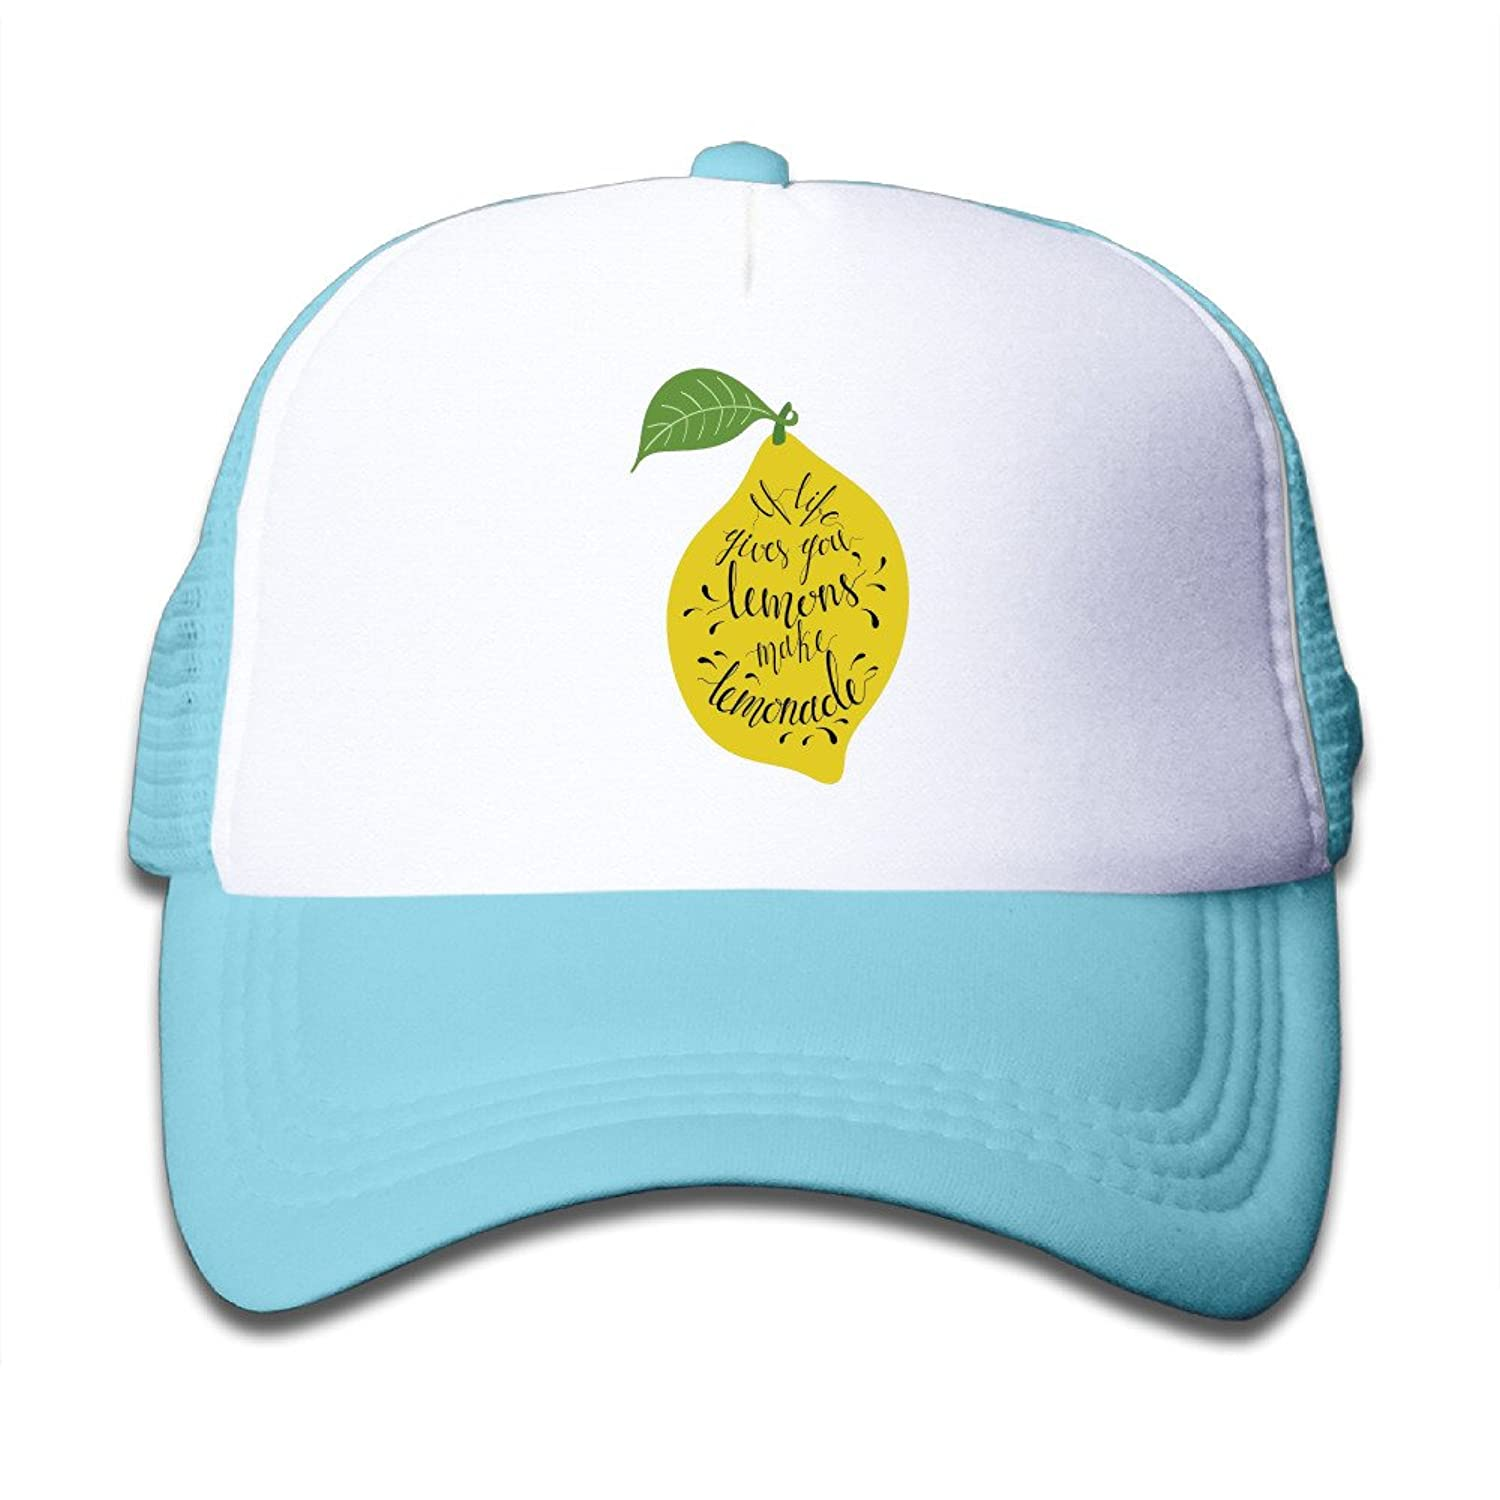 hot If Life Gives You Lemons, Make Lemonade Adjustable Snapback Hat Summer Truck Caps For Youth One Size Fits Most save more